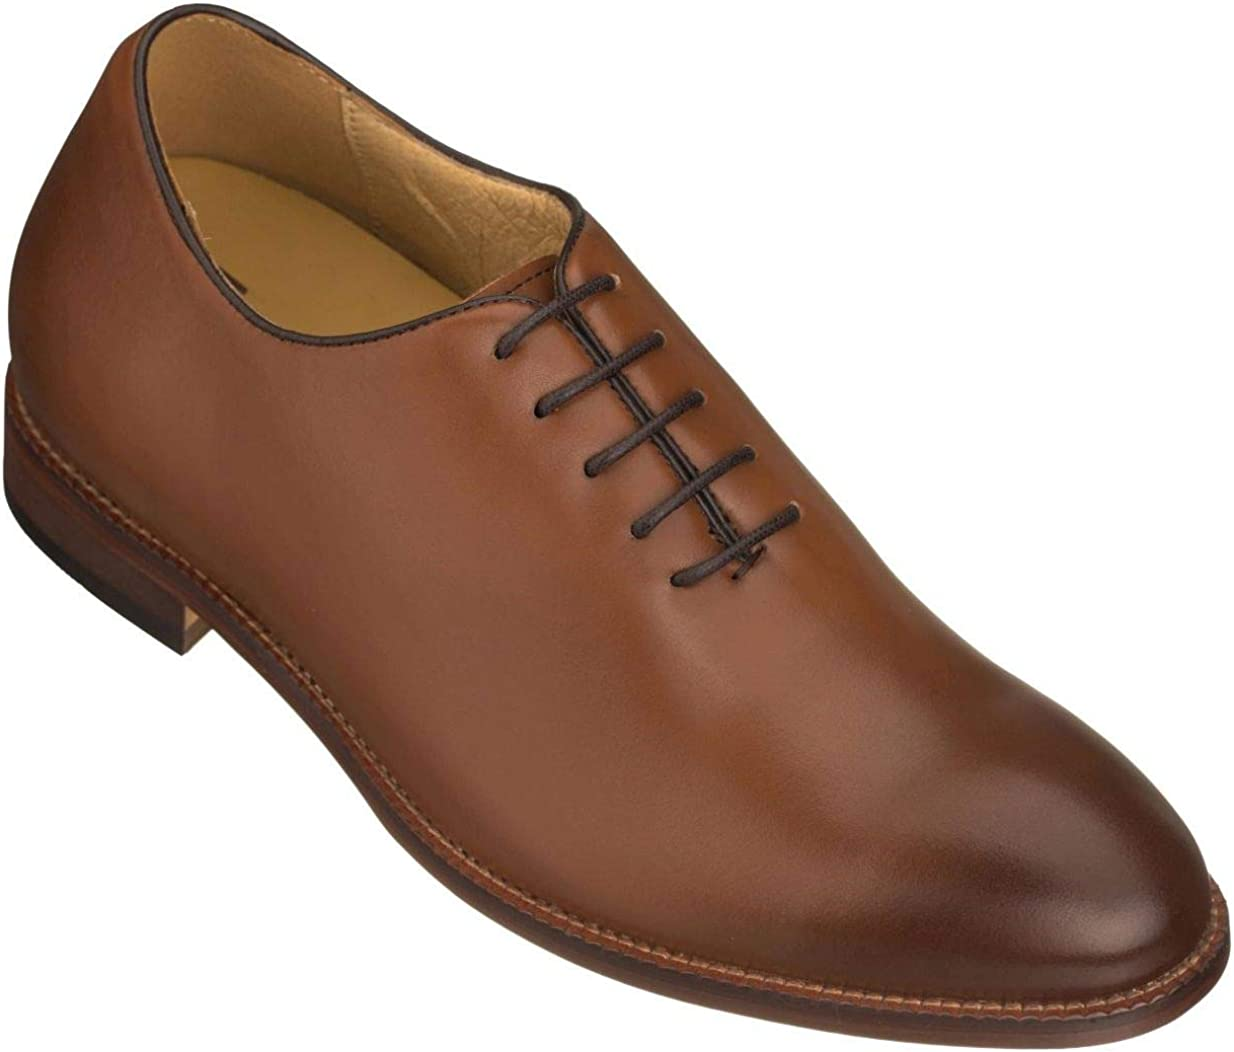 TOTO Men's Invisible Height Increasing Elevator Shoes - Premium Leather Lace-up Formal Oxfords - 2.6 Inches Taller